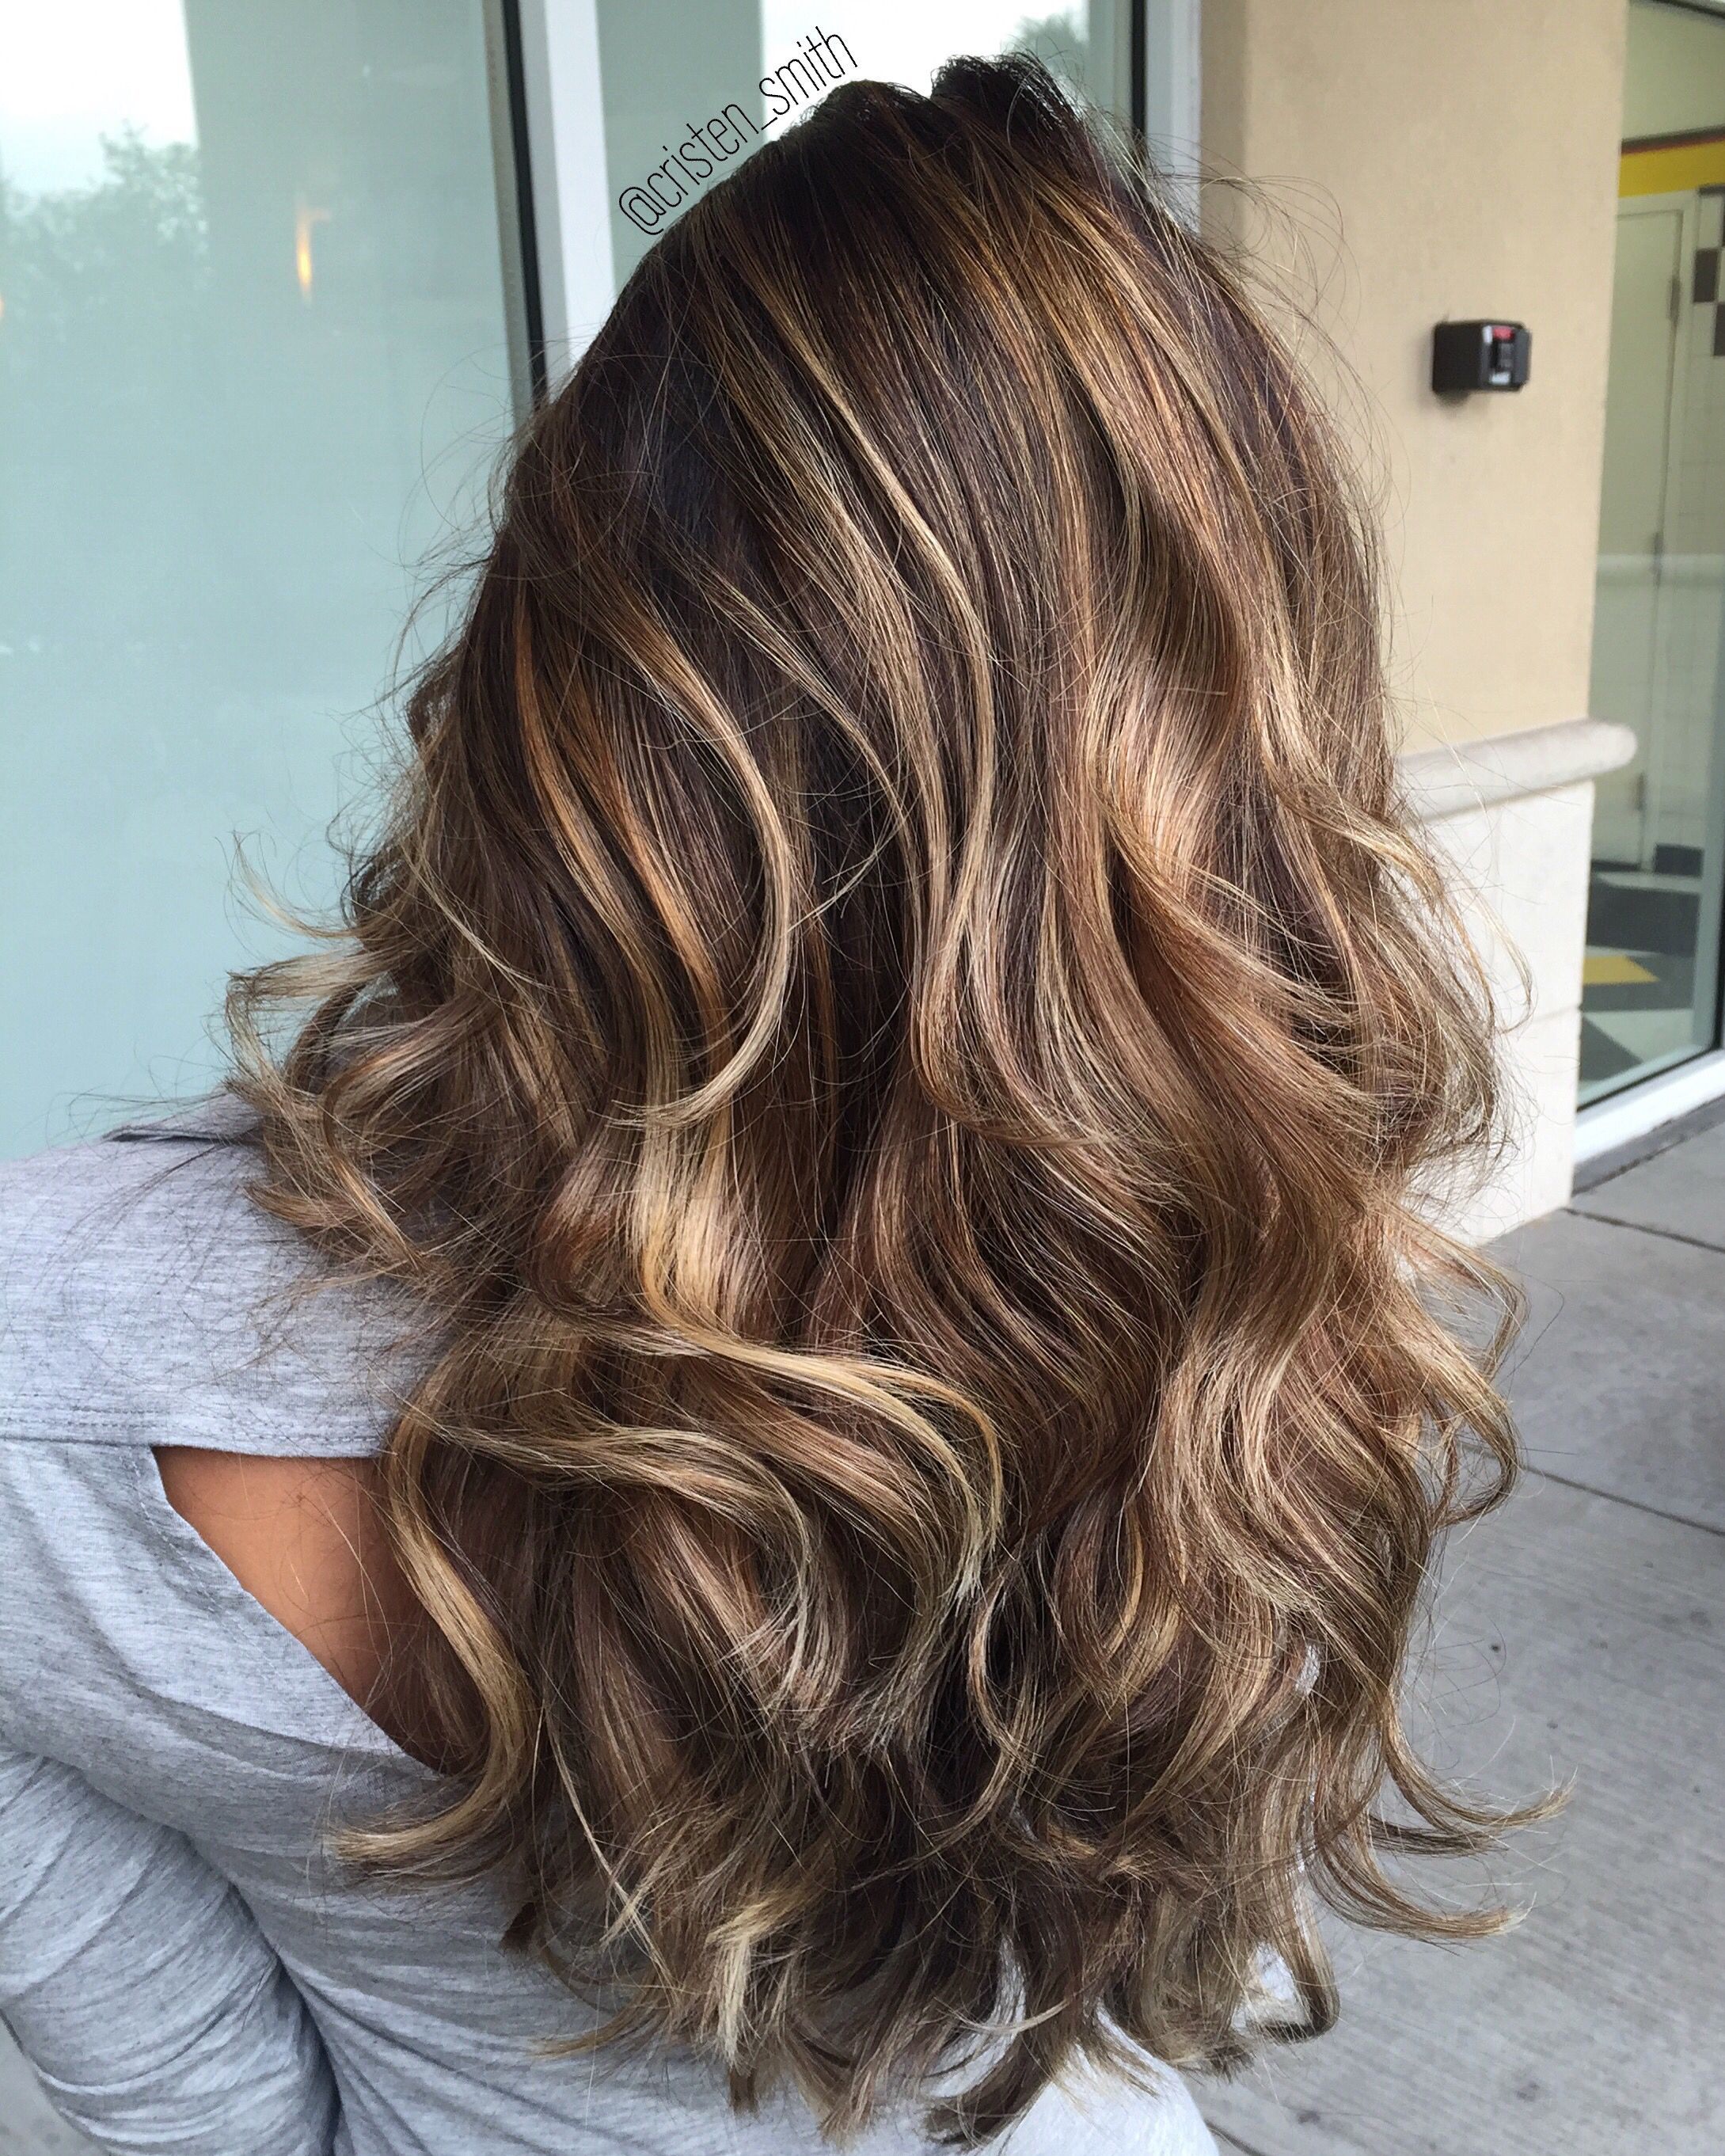 Ashy Blonde Balayage Beauty Hair Hair Ideas Pinterest Ashy